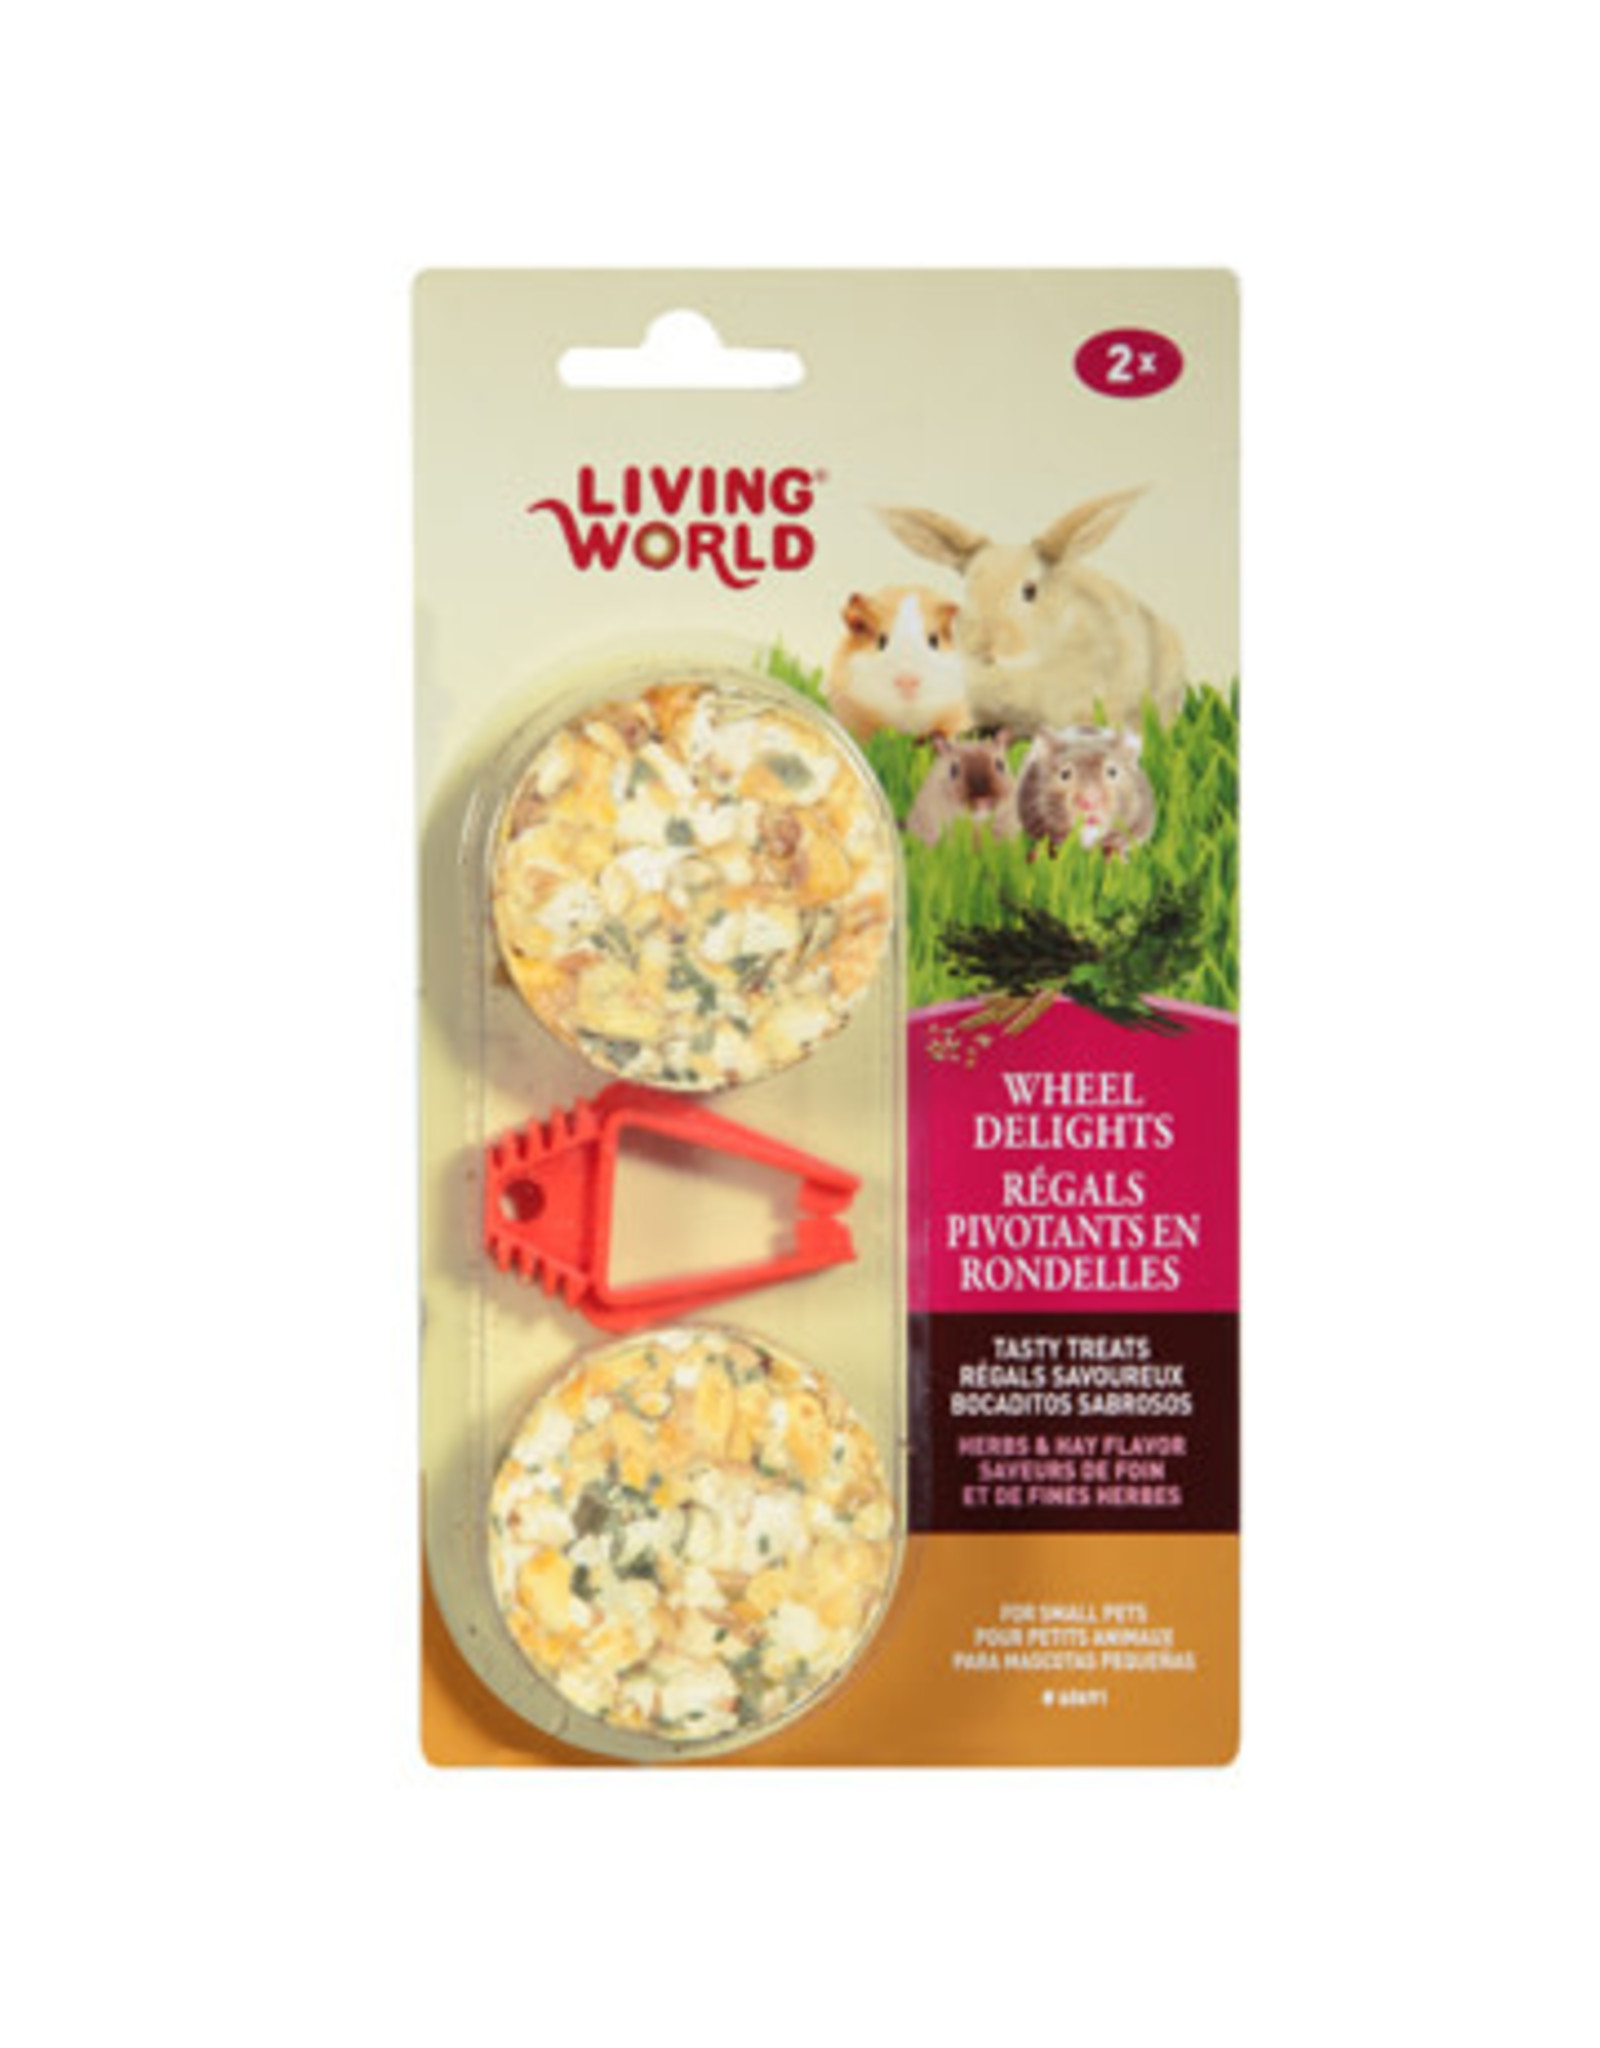 Living World Living World Wheel Delights - Herb/Hay - 2-pack